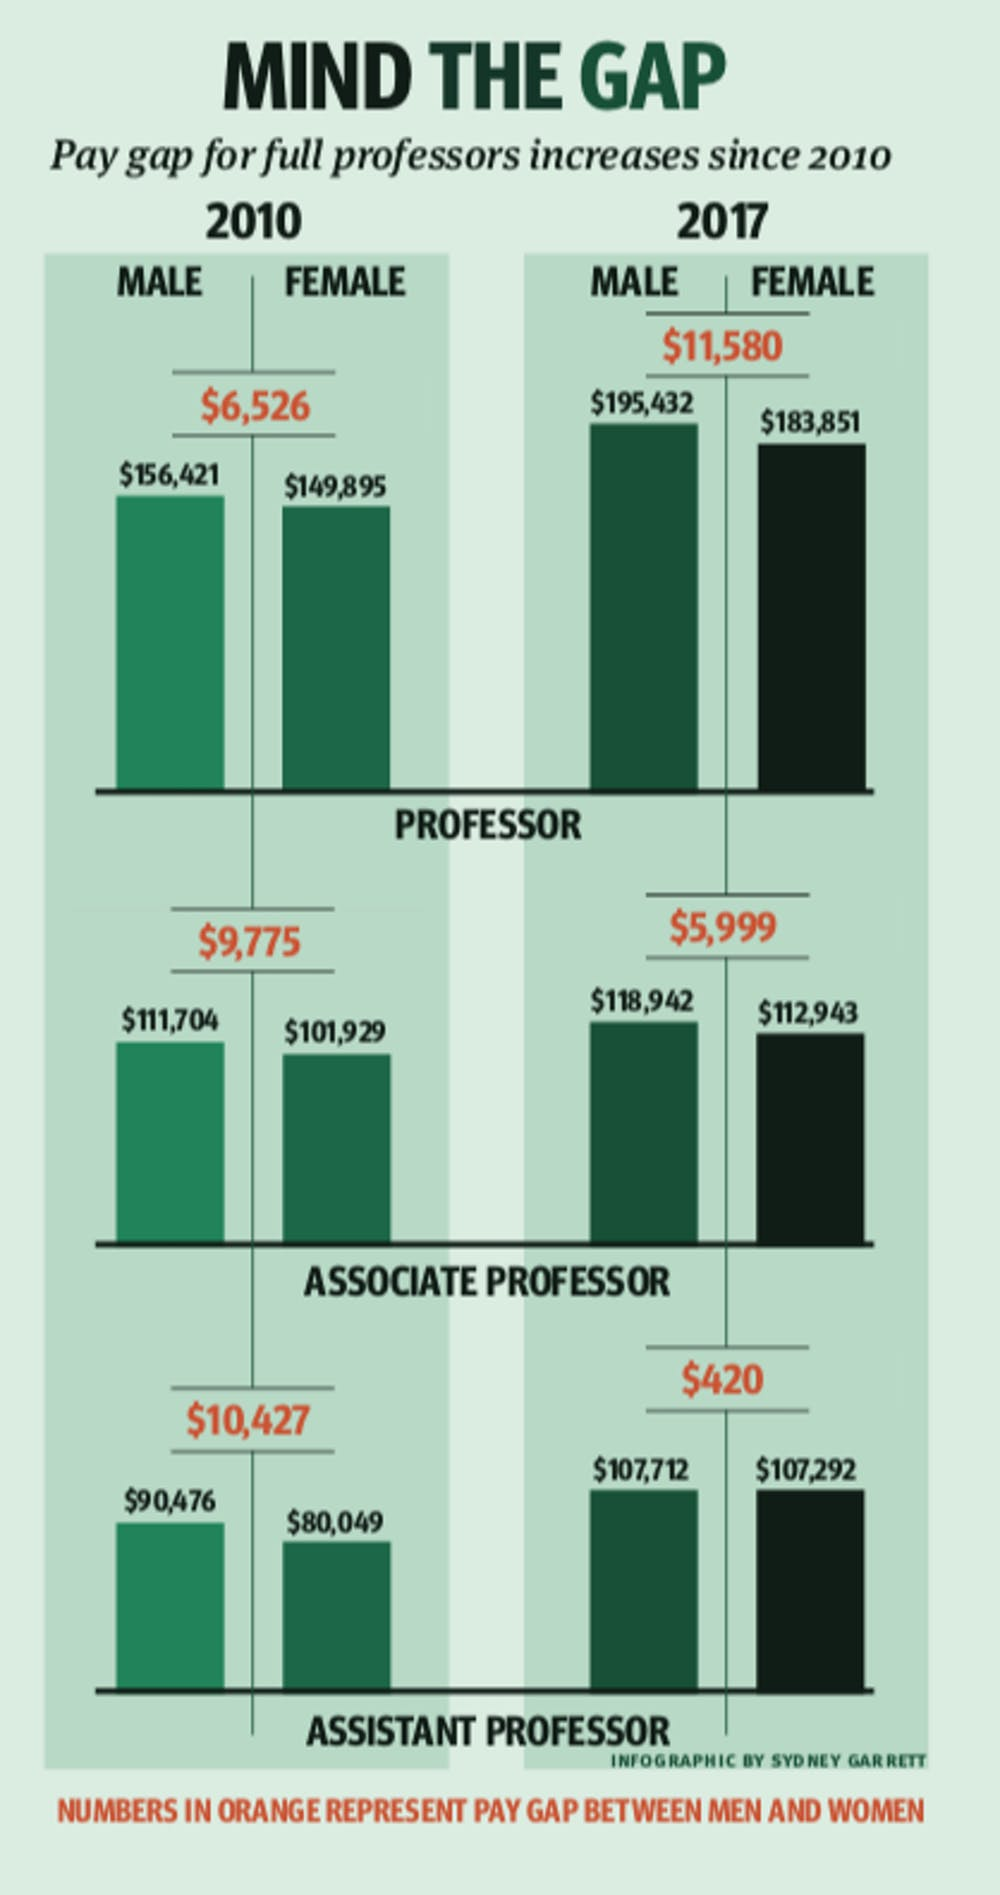 pay-gap-story-sydney-garrett-infographic